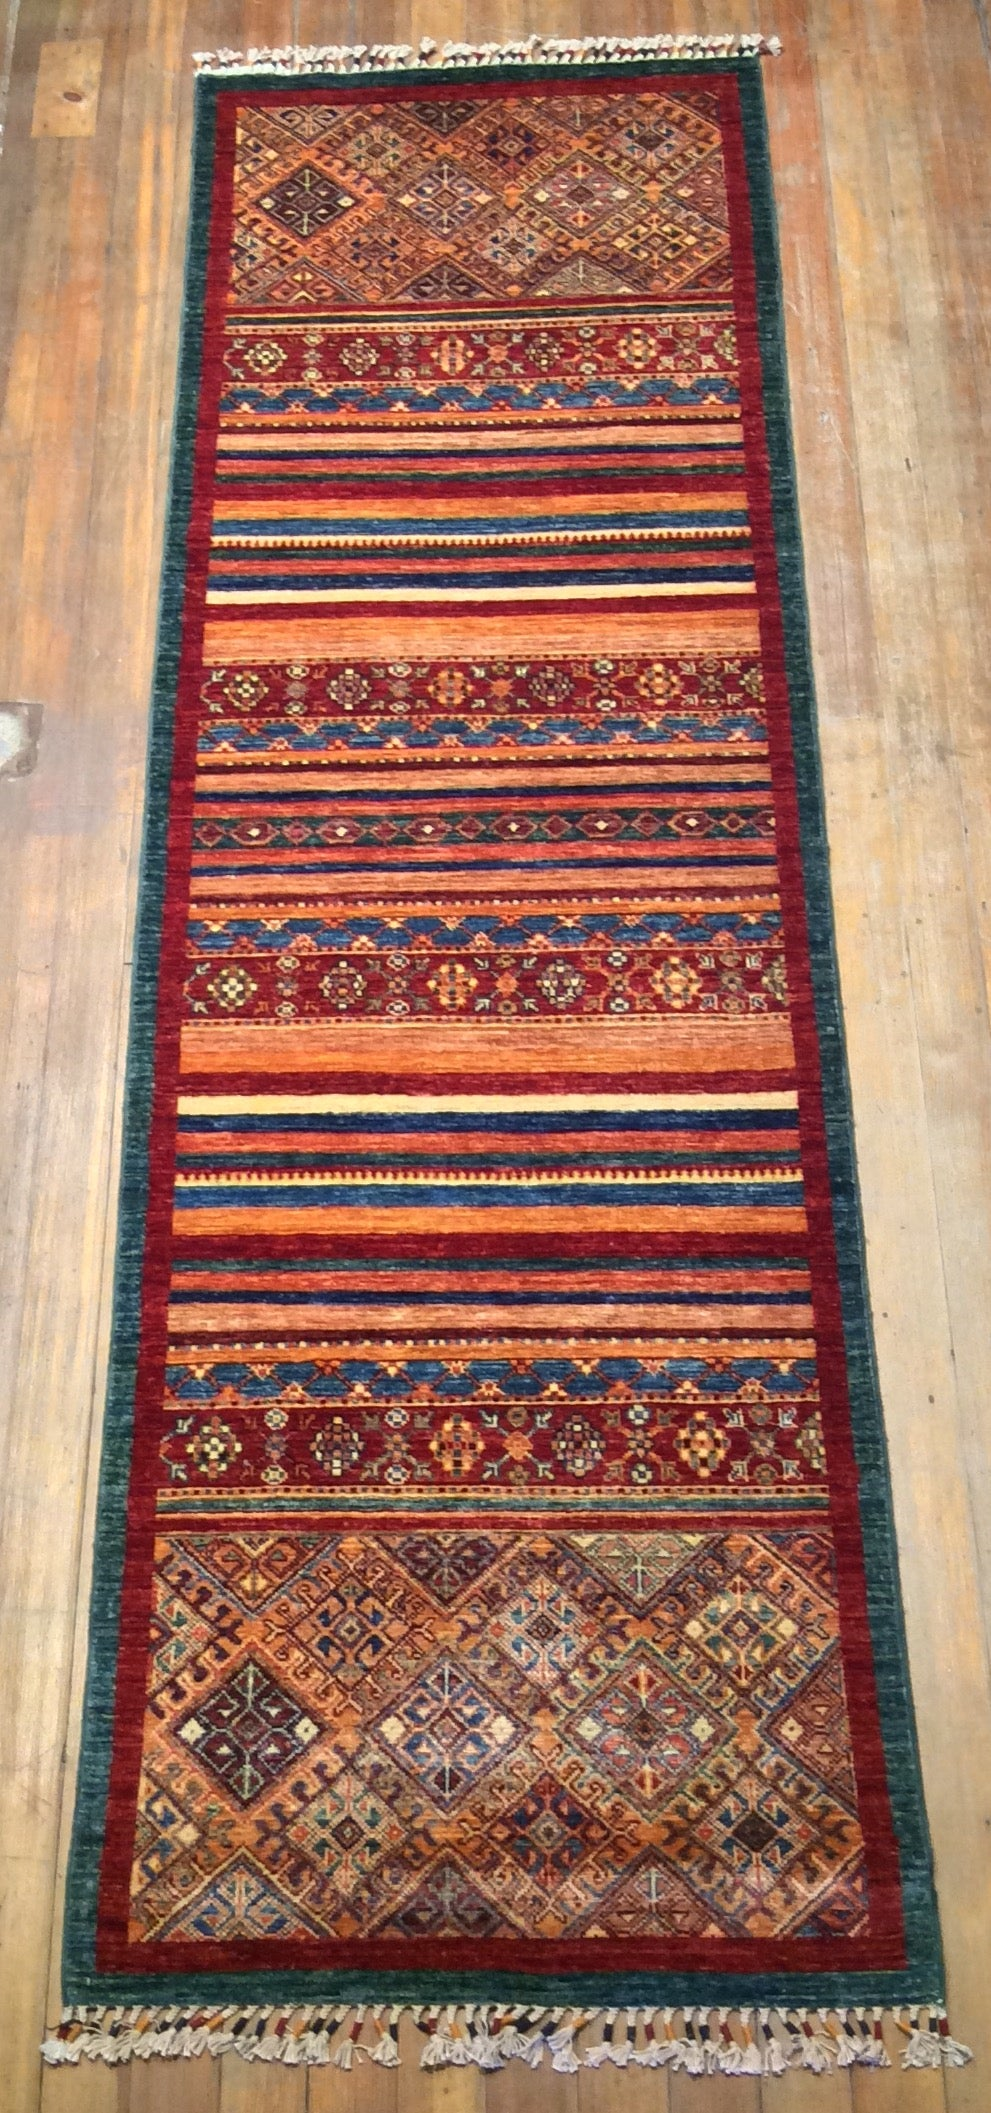 Tribal Khorjin Rug.  8'.5